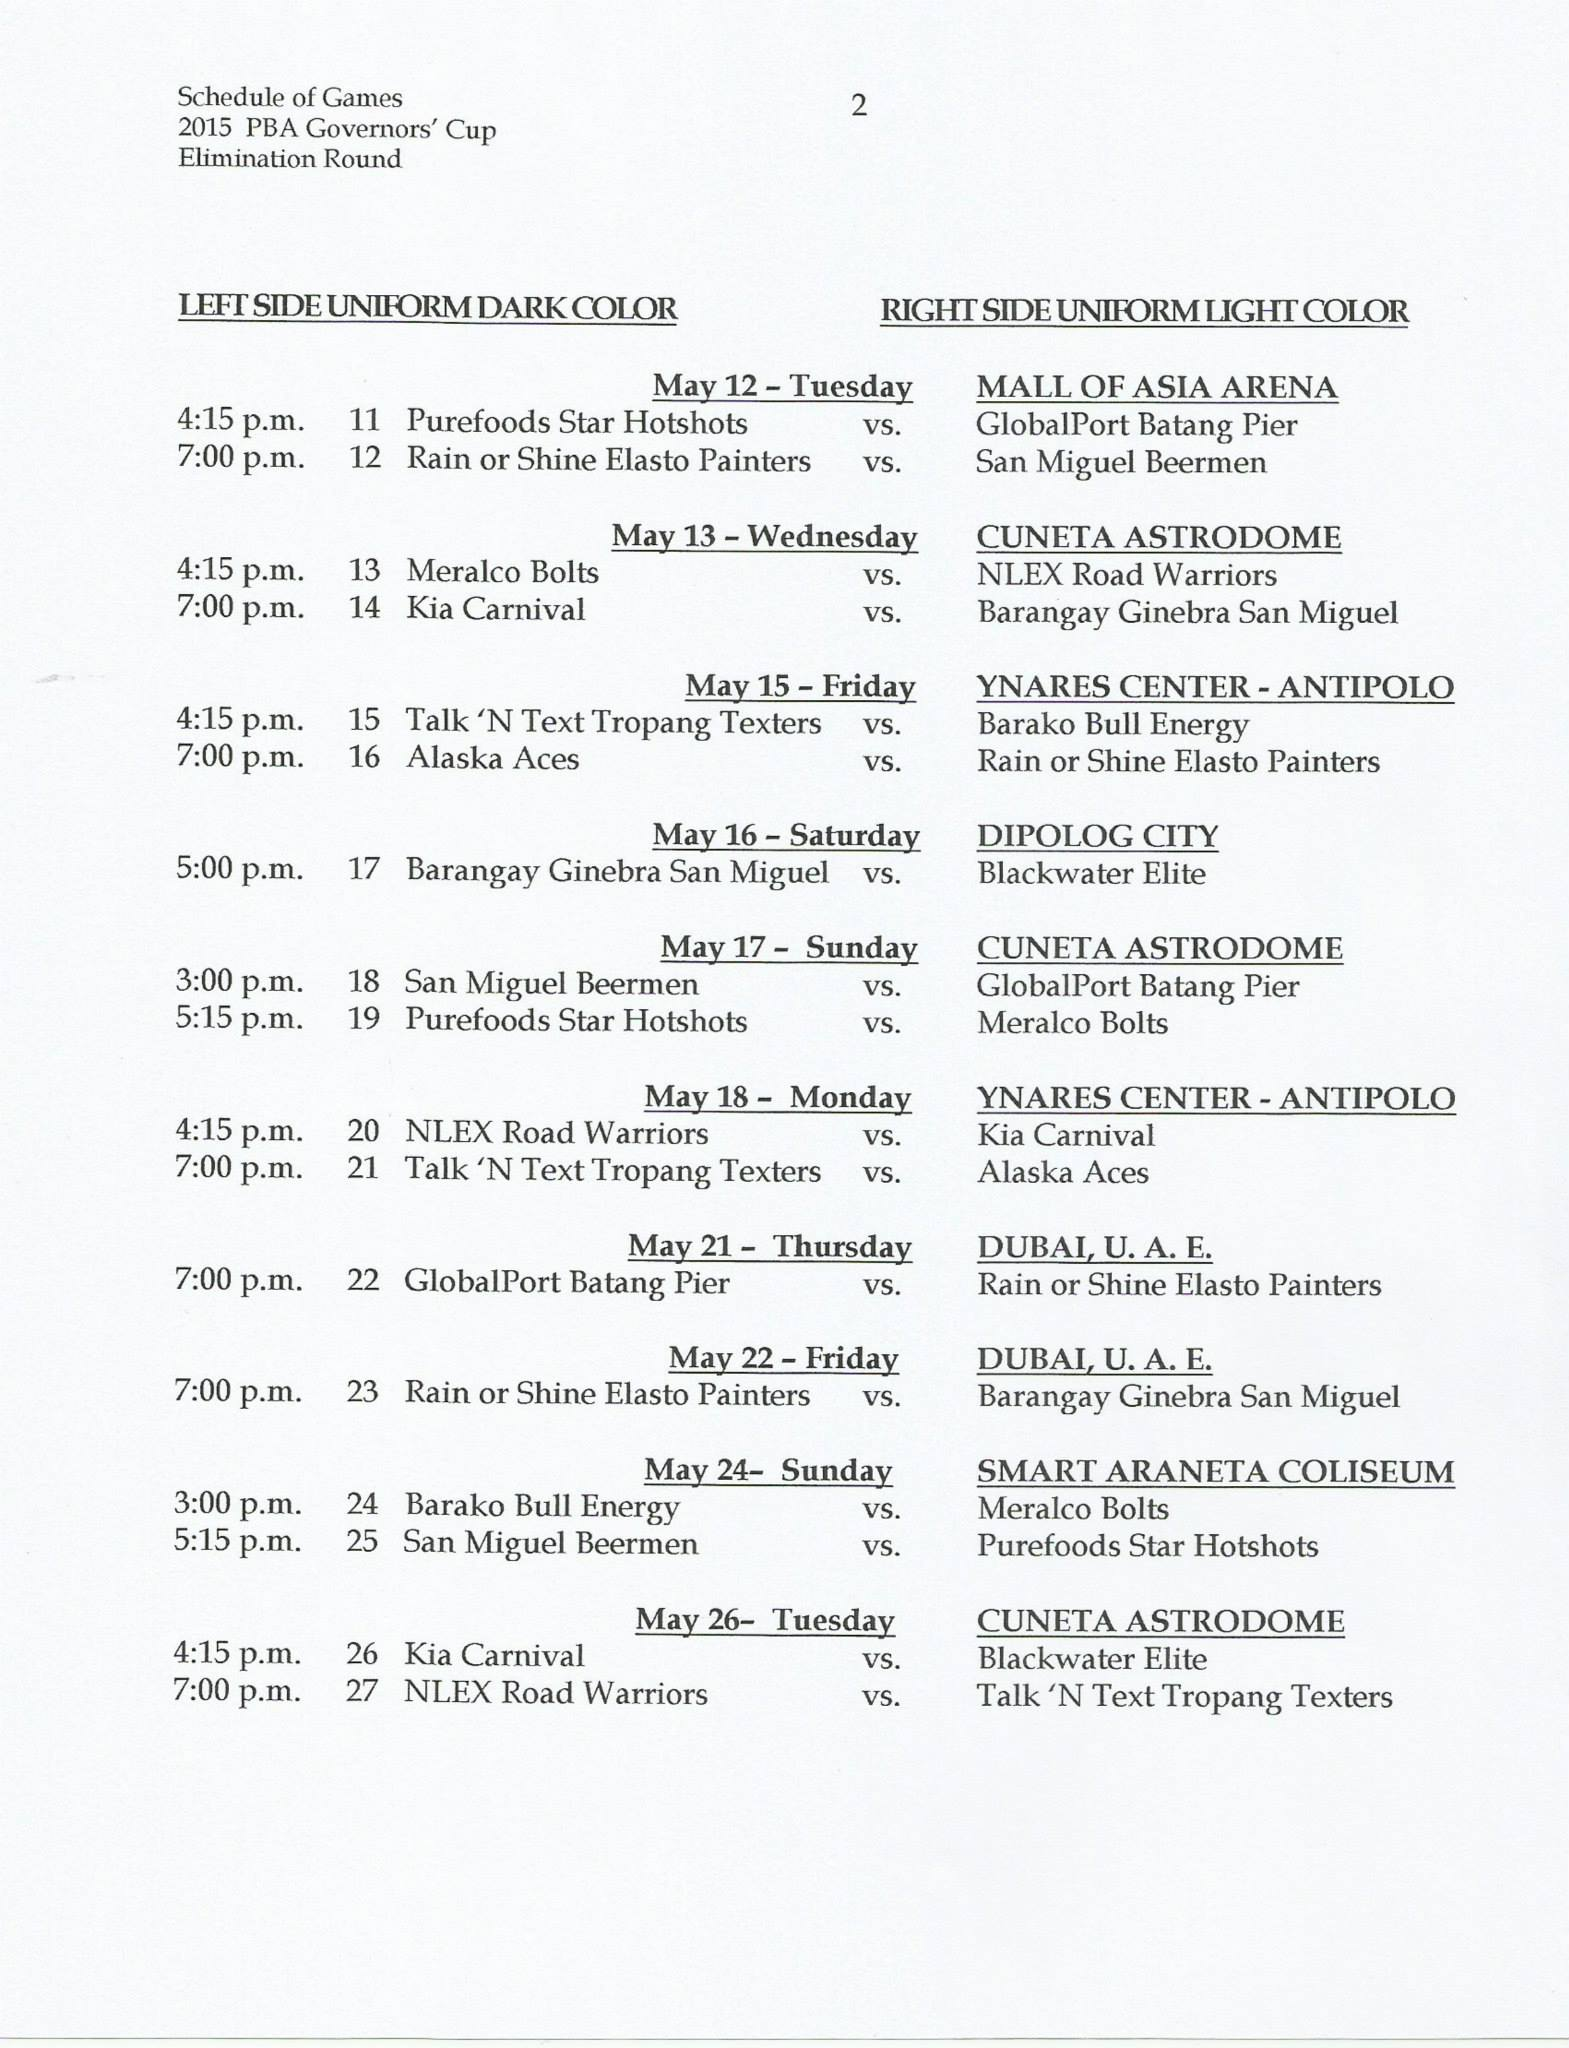 Schedule released for the 2015 Governors' Cup – SLAMonline